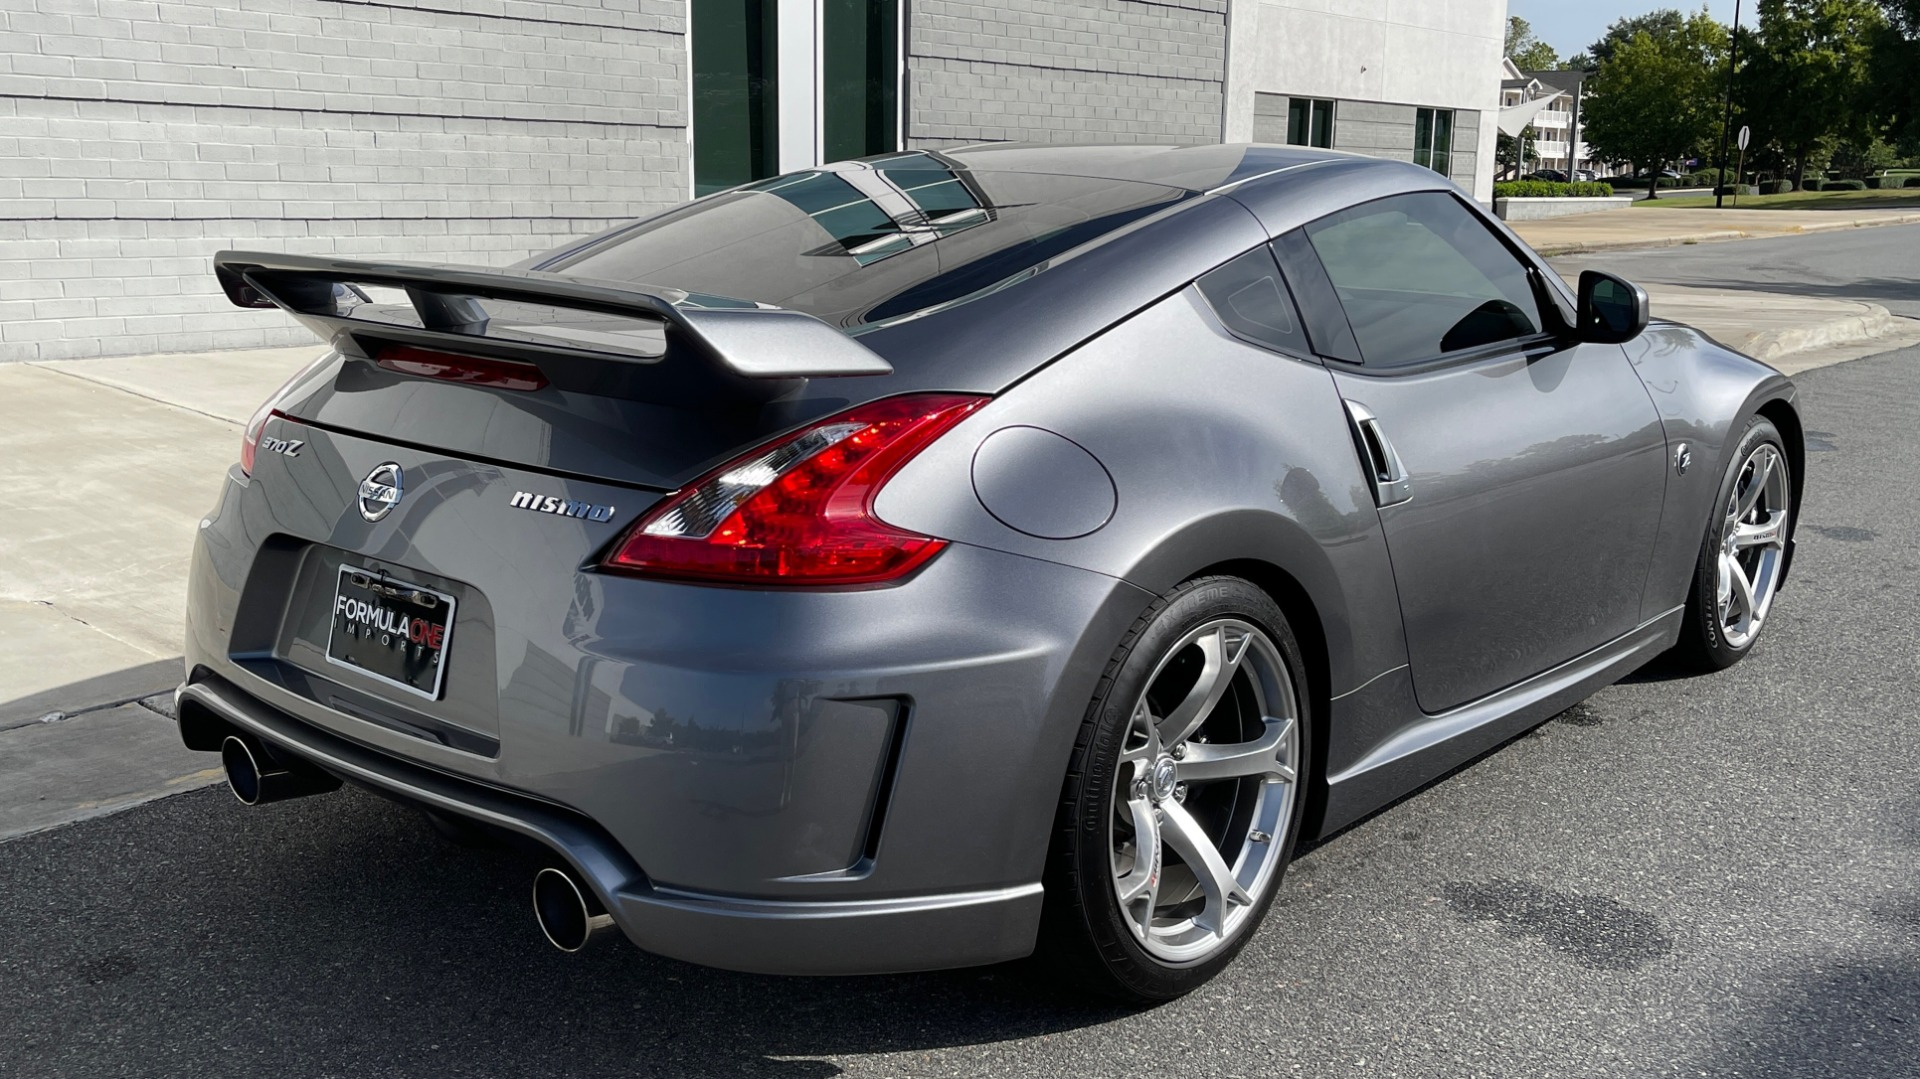 Used 2011 Nissan 370Z NISMO COUPE / 3.7L V6 / 6-SPD MAN / AUTO CLIMATE CONTROL for sale $32,995 at Formula Imports in Charlotte NC 28227 2